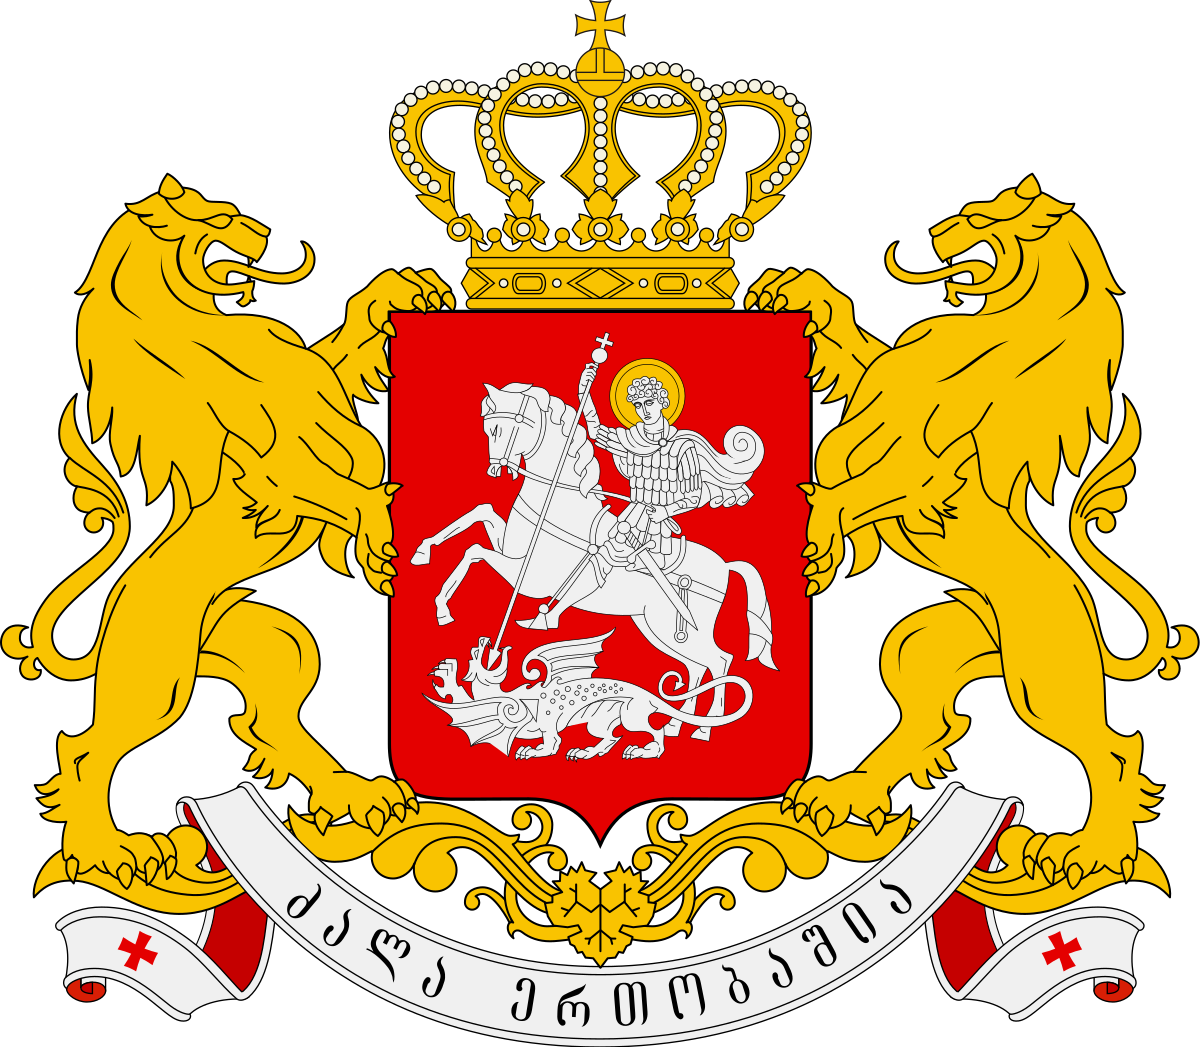 Missions clipart citizenship canadian. Coat of arms georgia